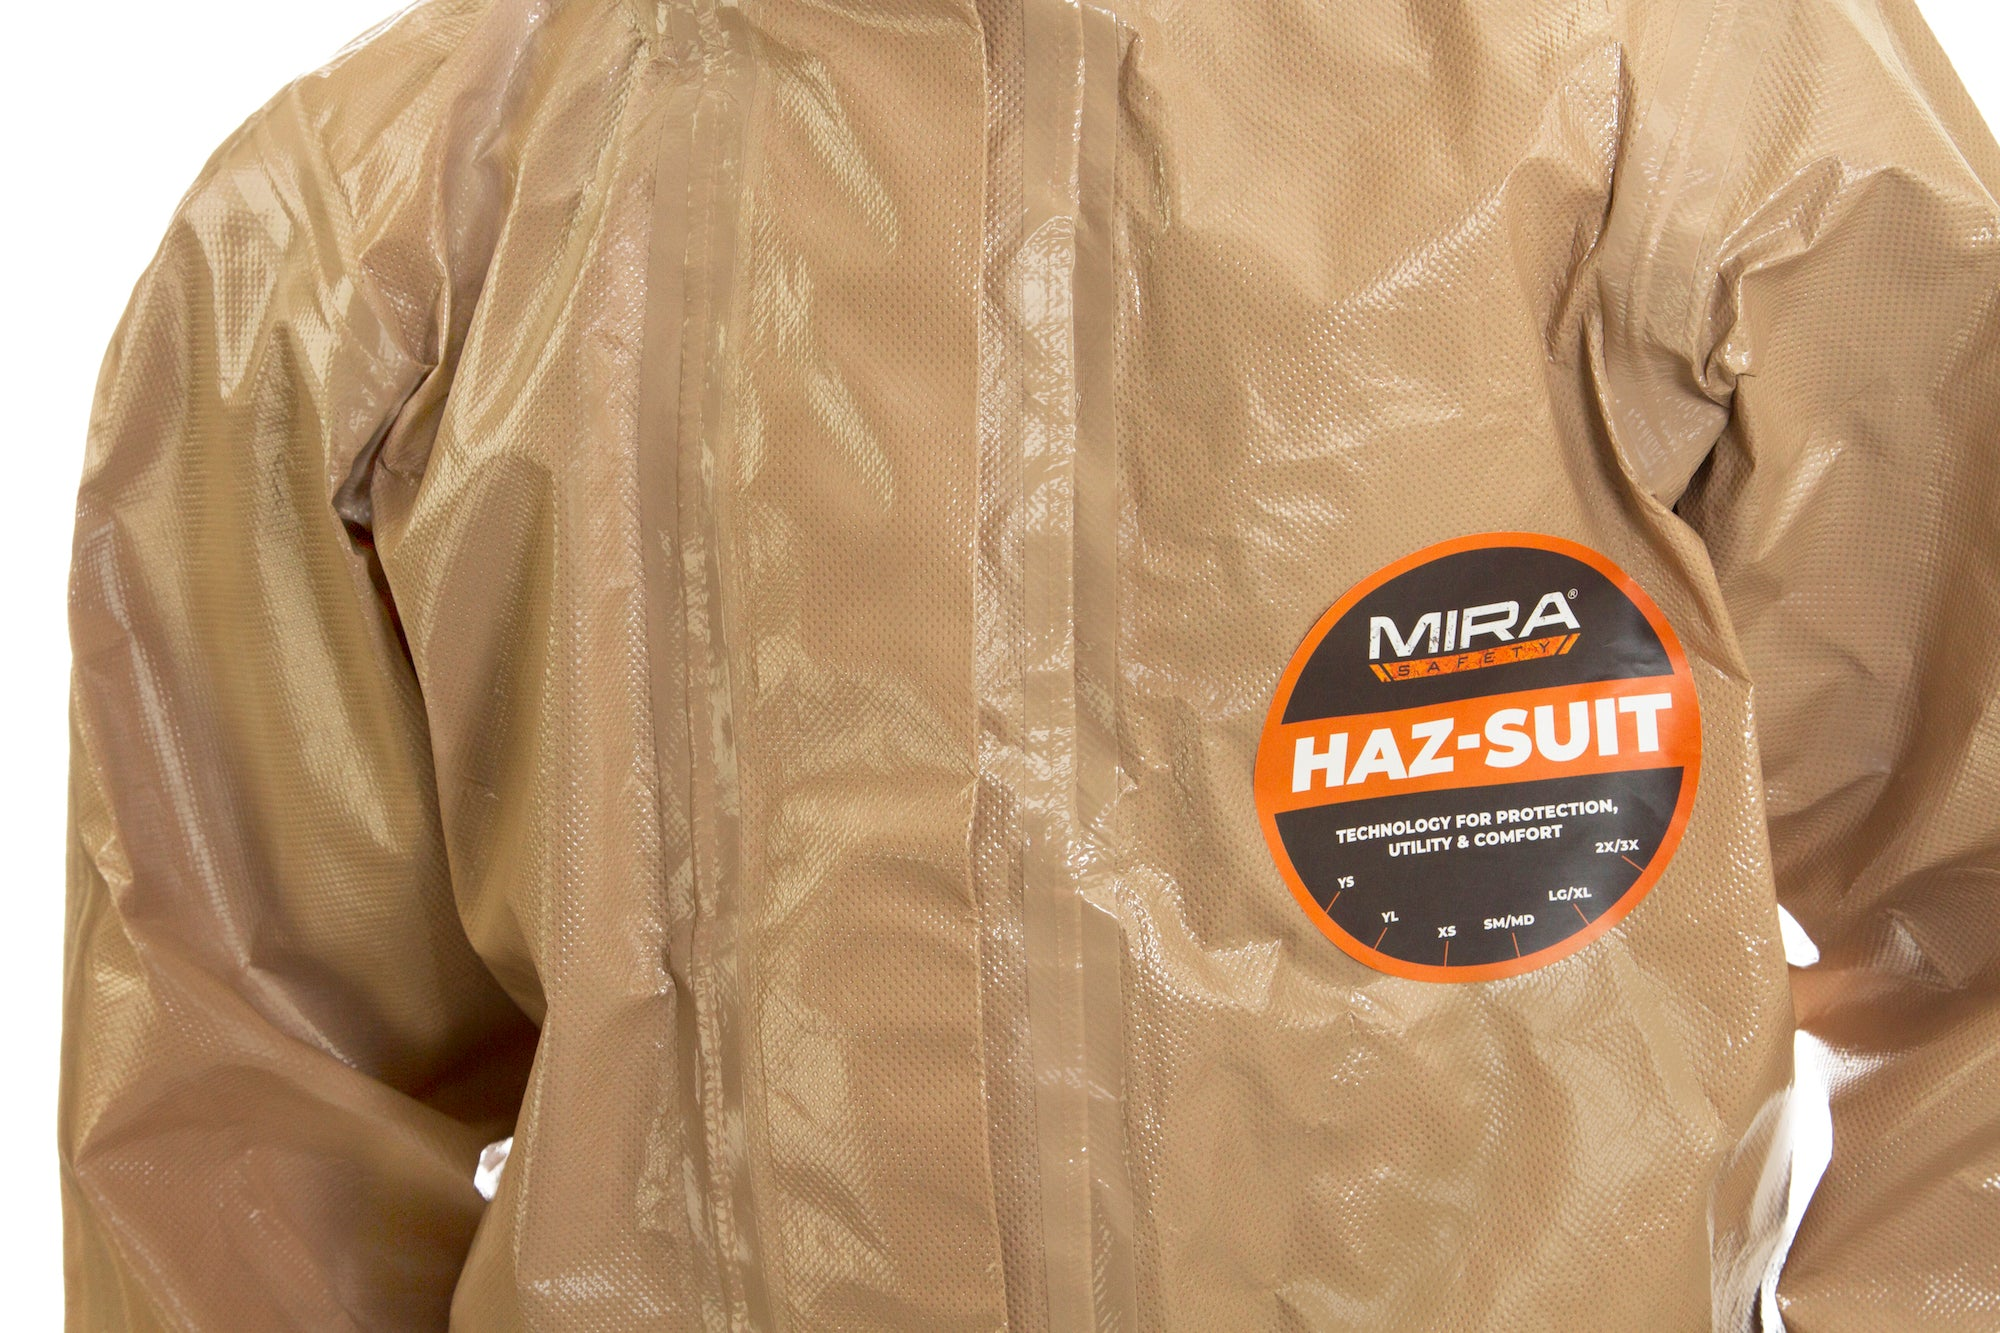 Chest closeup of a child wearing the HAZ-SUIT HAZMAT Suit